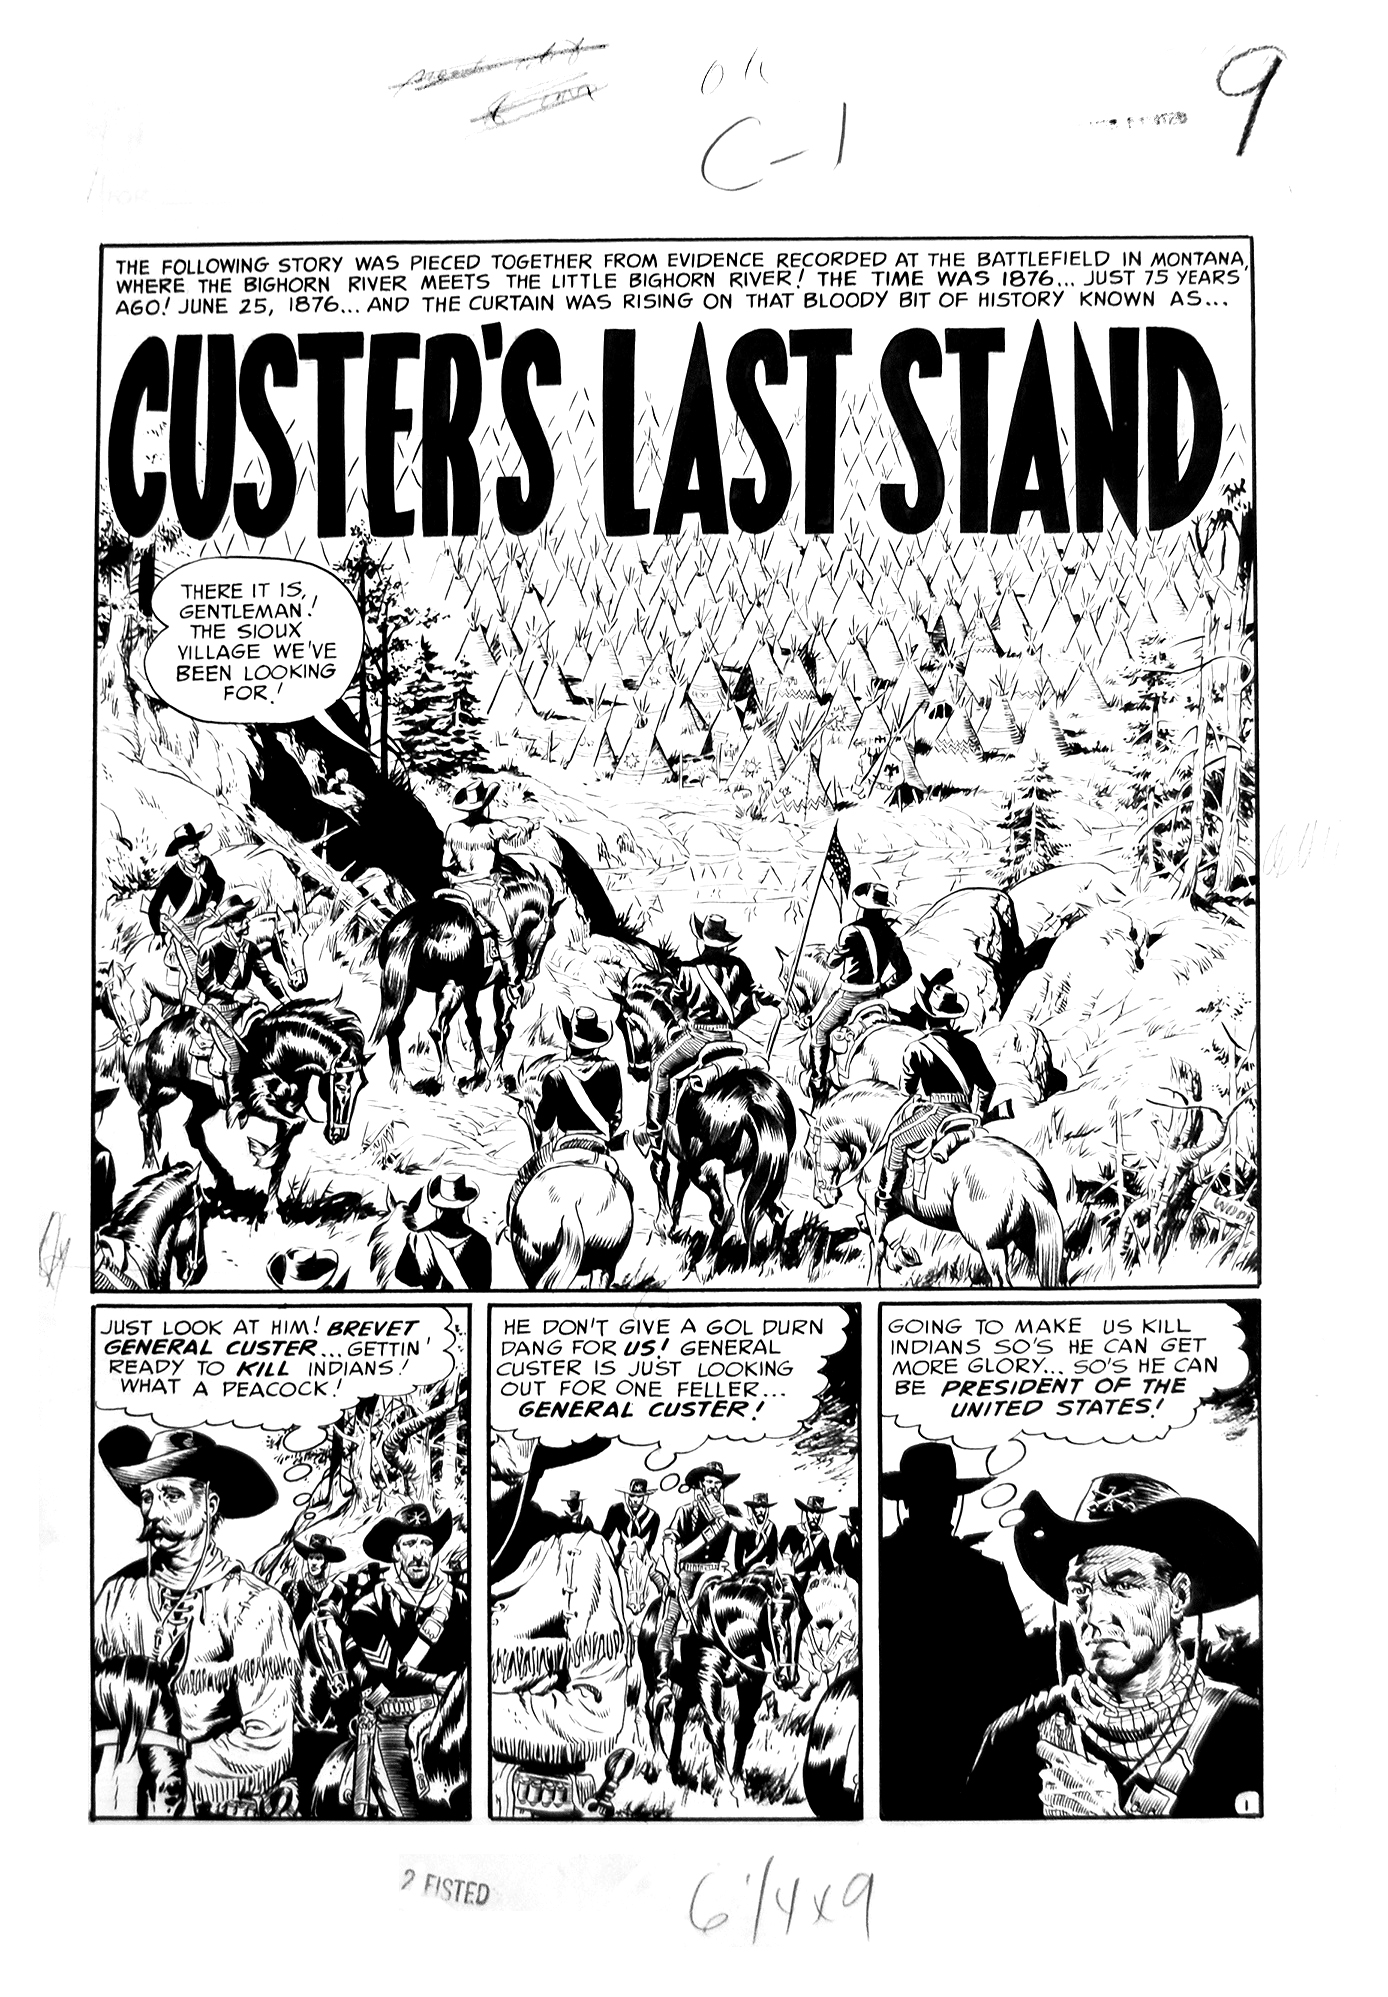 Custer's last stand from Two Fisted Tales N°27-1952